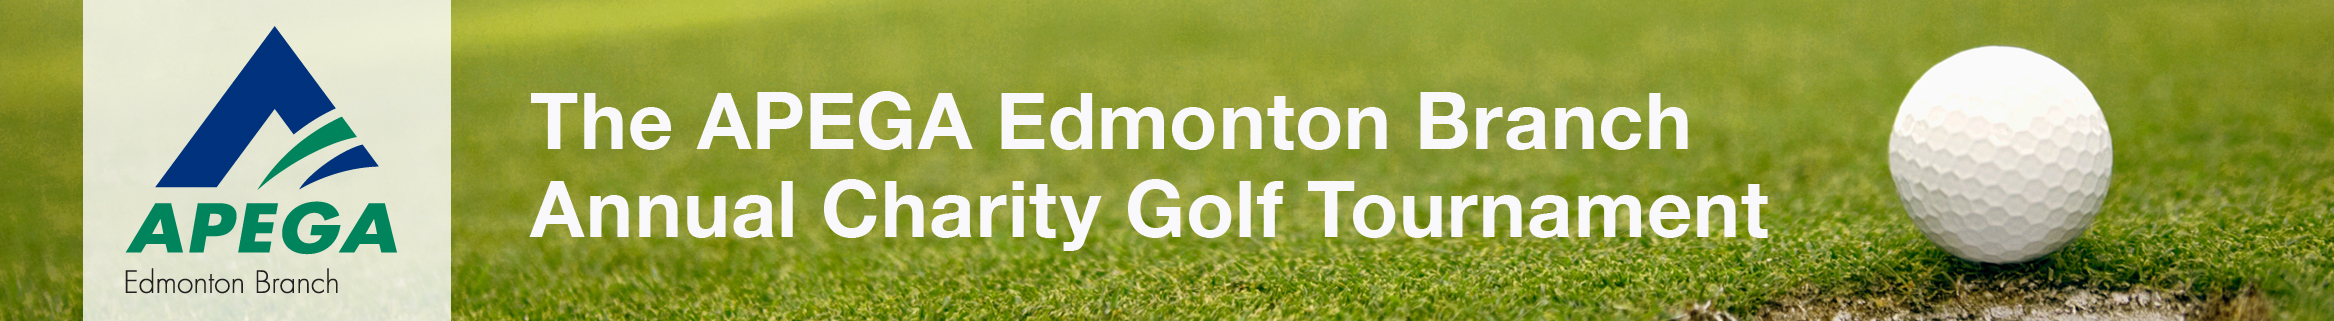 Edmonton Branch Charity Golf Tournament 2019